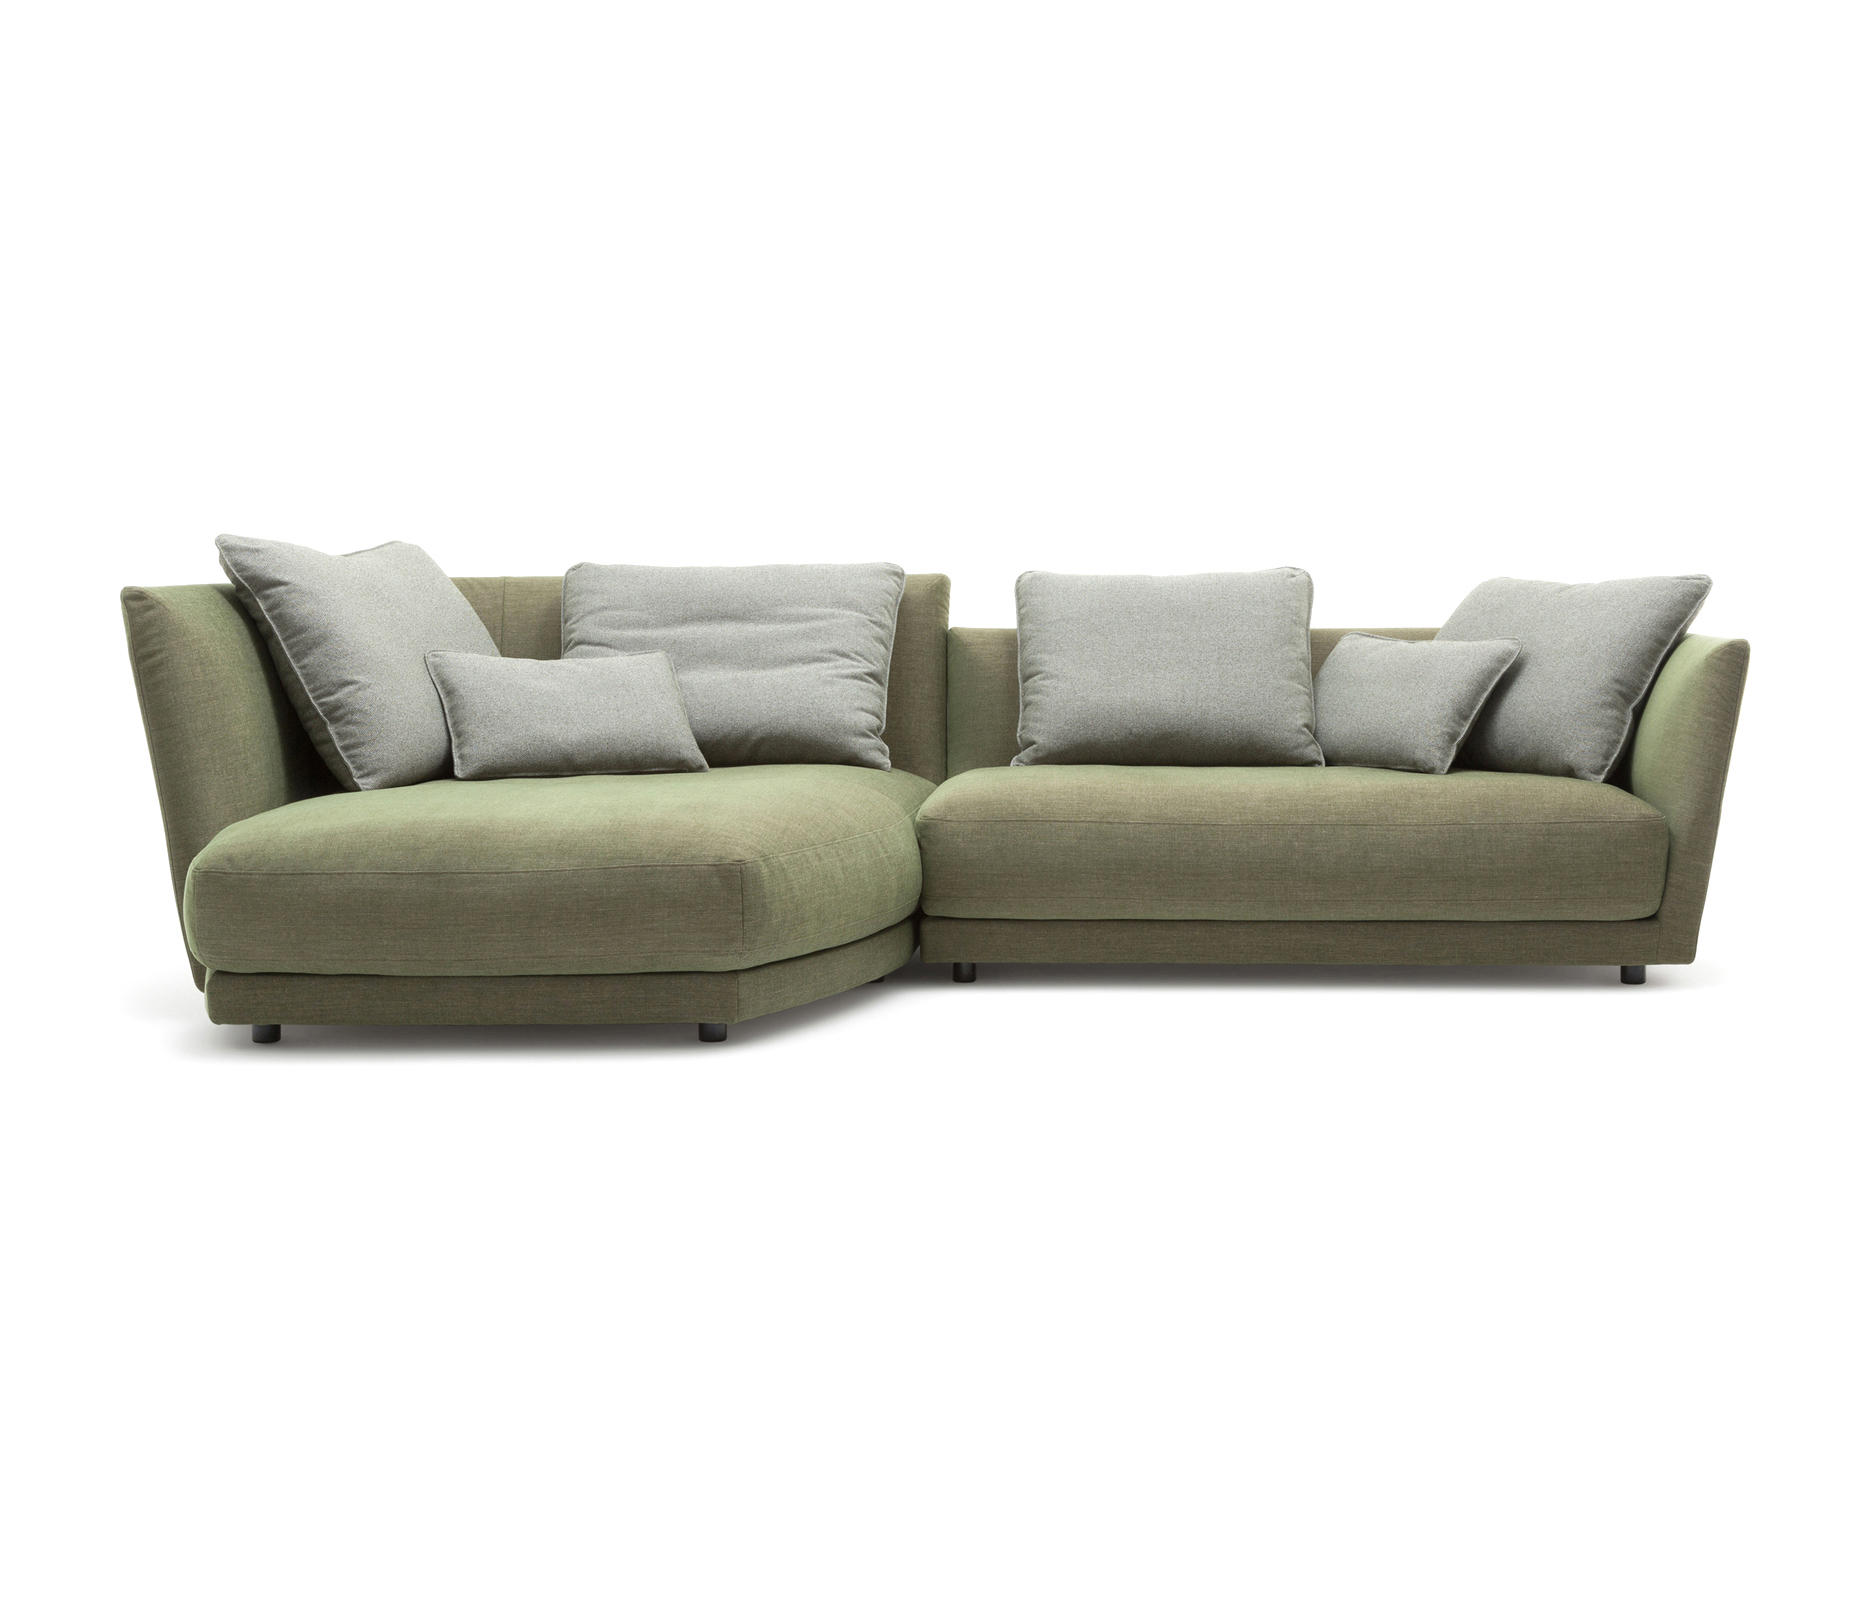 Rolf Benz Eckcouch Rolf Benz Tondo Sofas From Rolf Benz Architonic